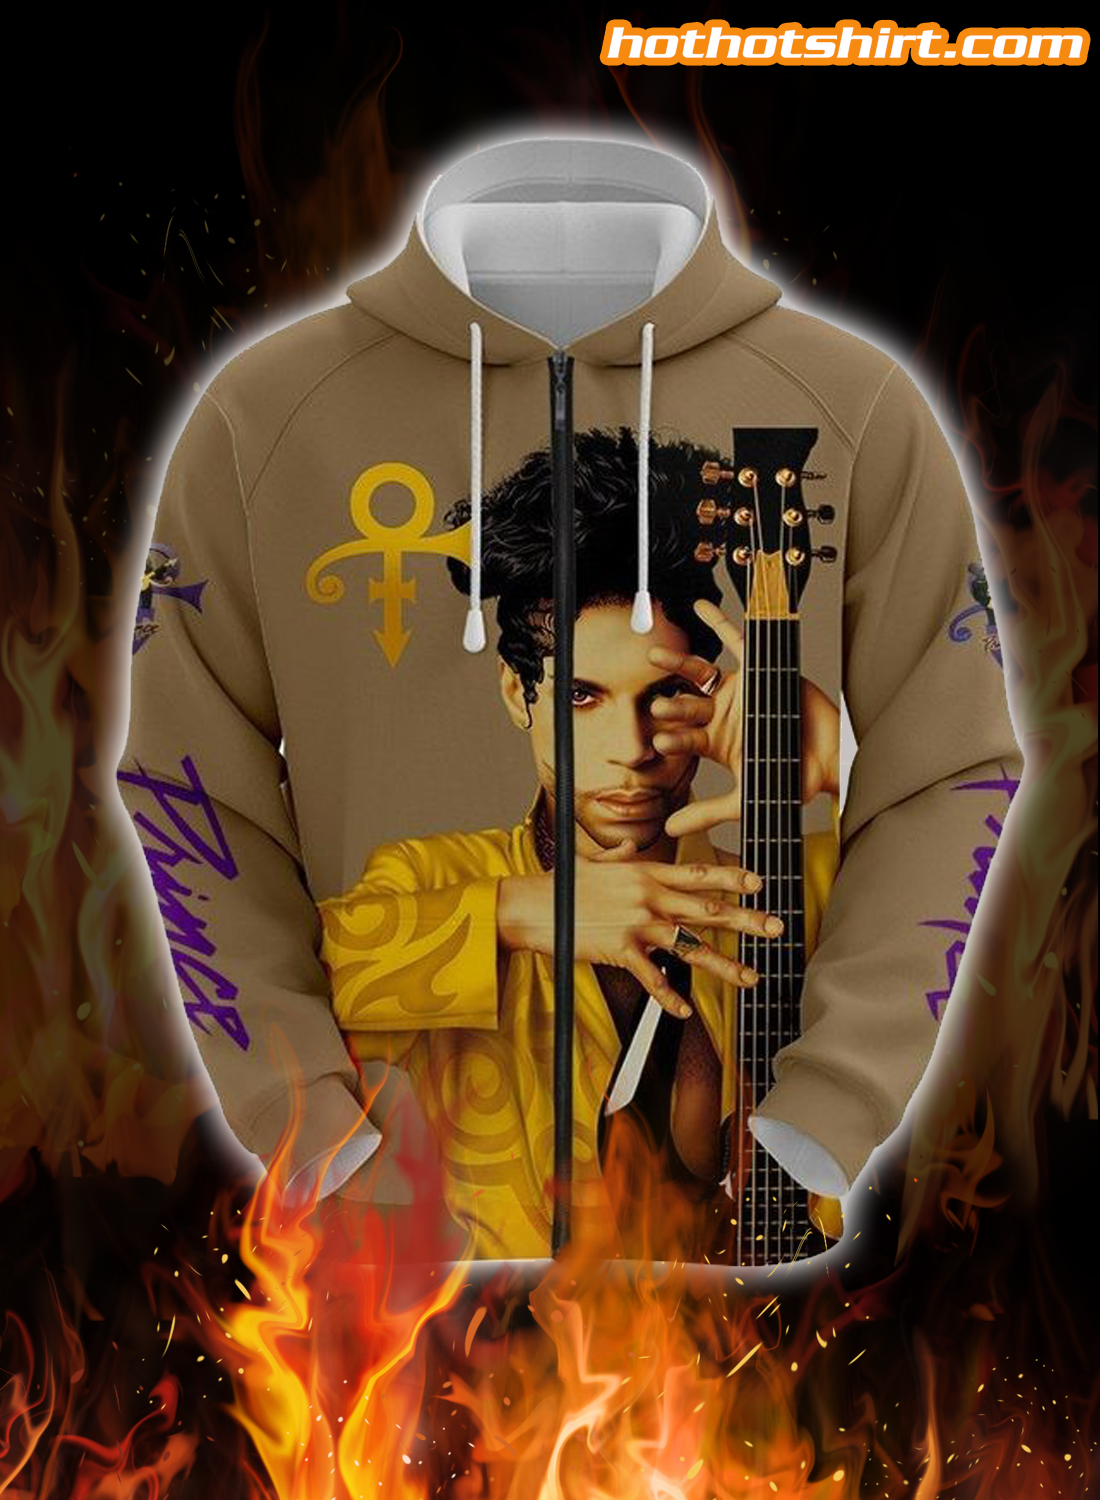 Prince Guitar 3D All Over Printed 3D T-Shirt 3